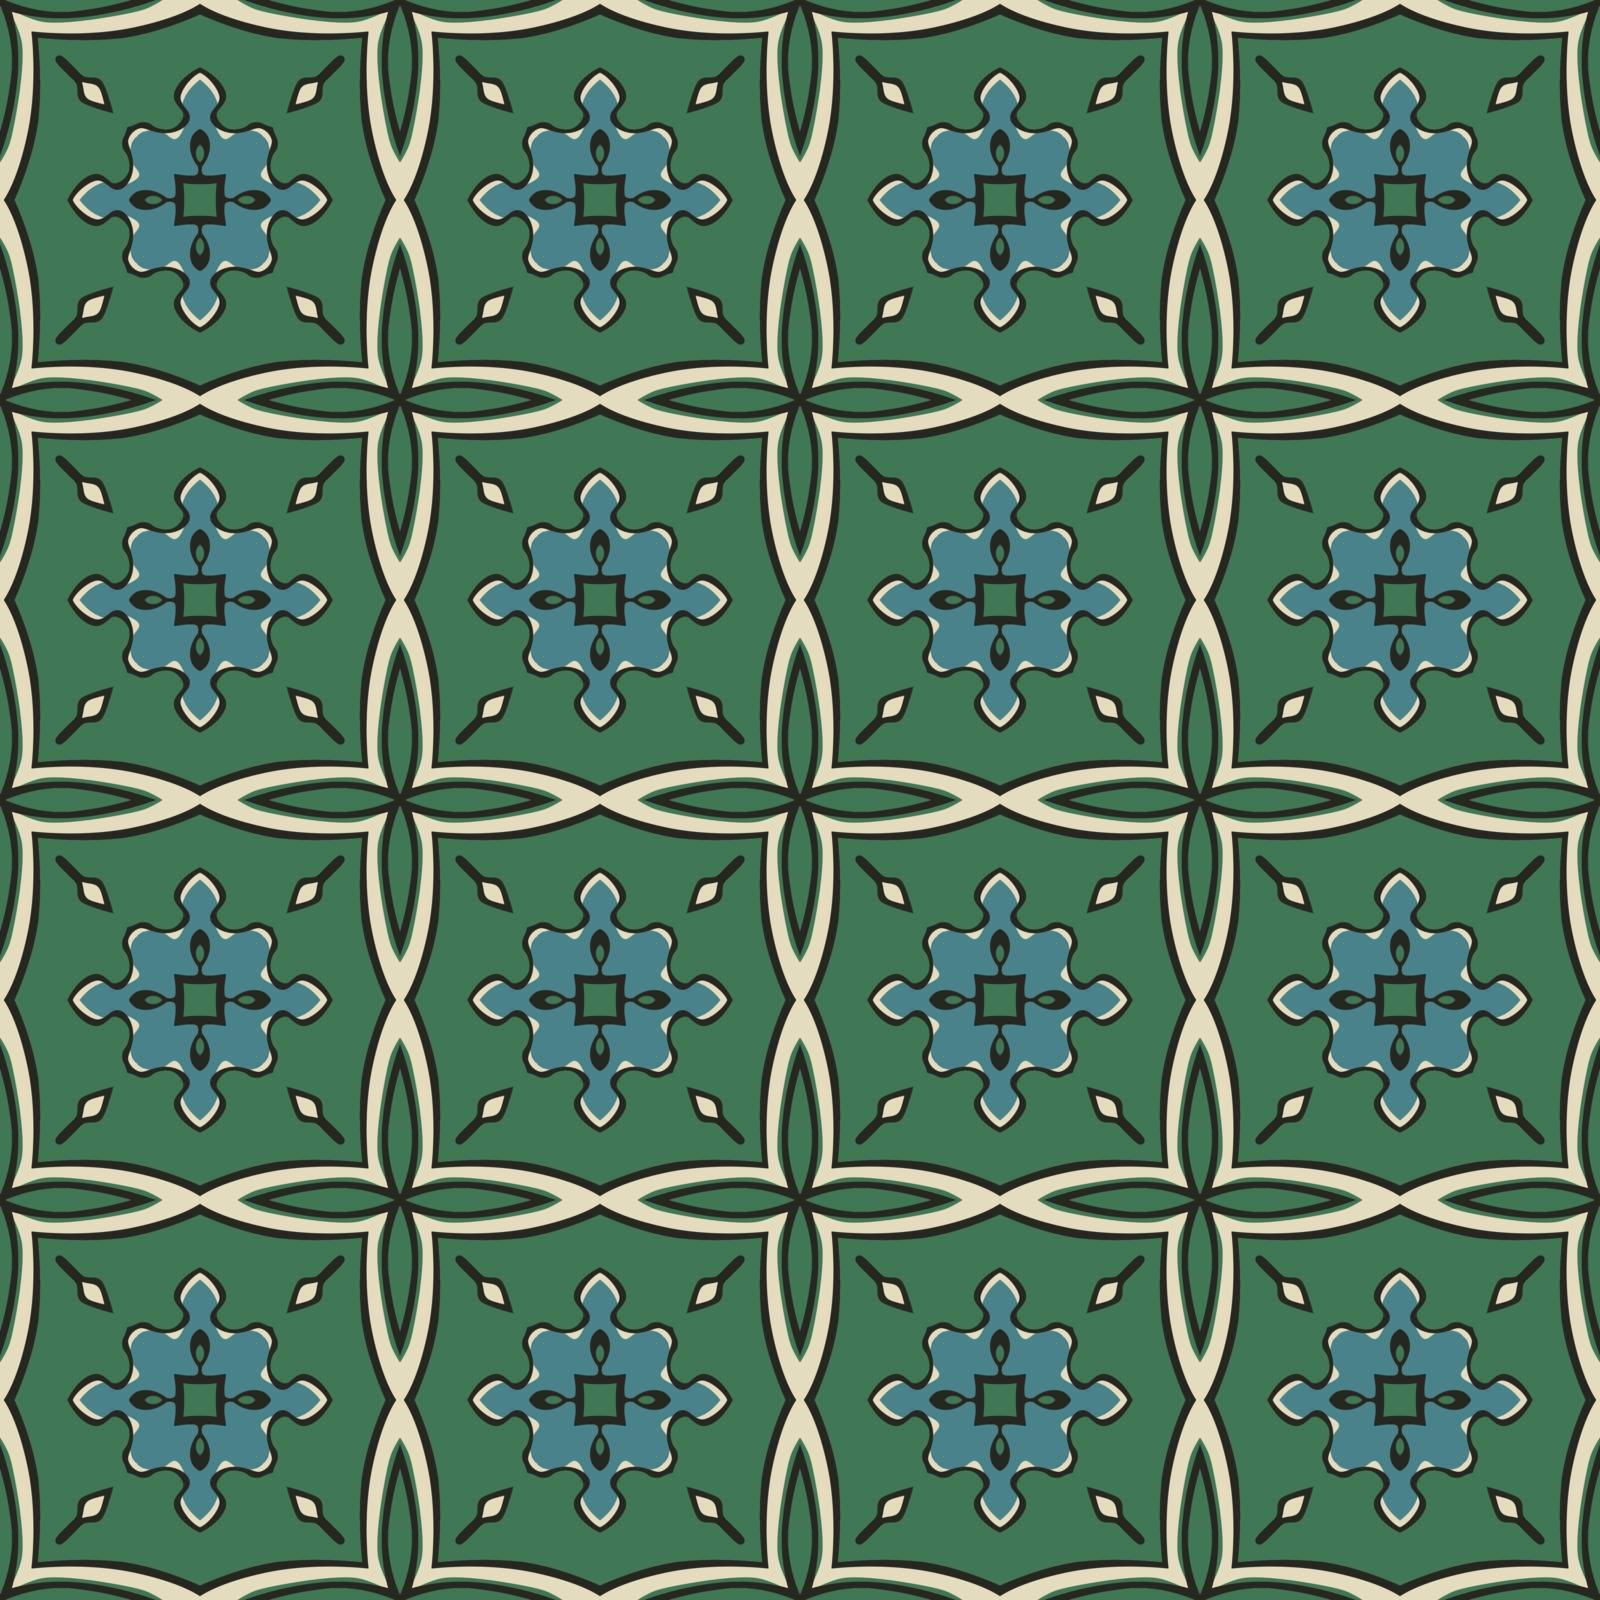 Seamless illustrated pattern made of abstract elements in beige,turquoise, green and black